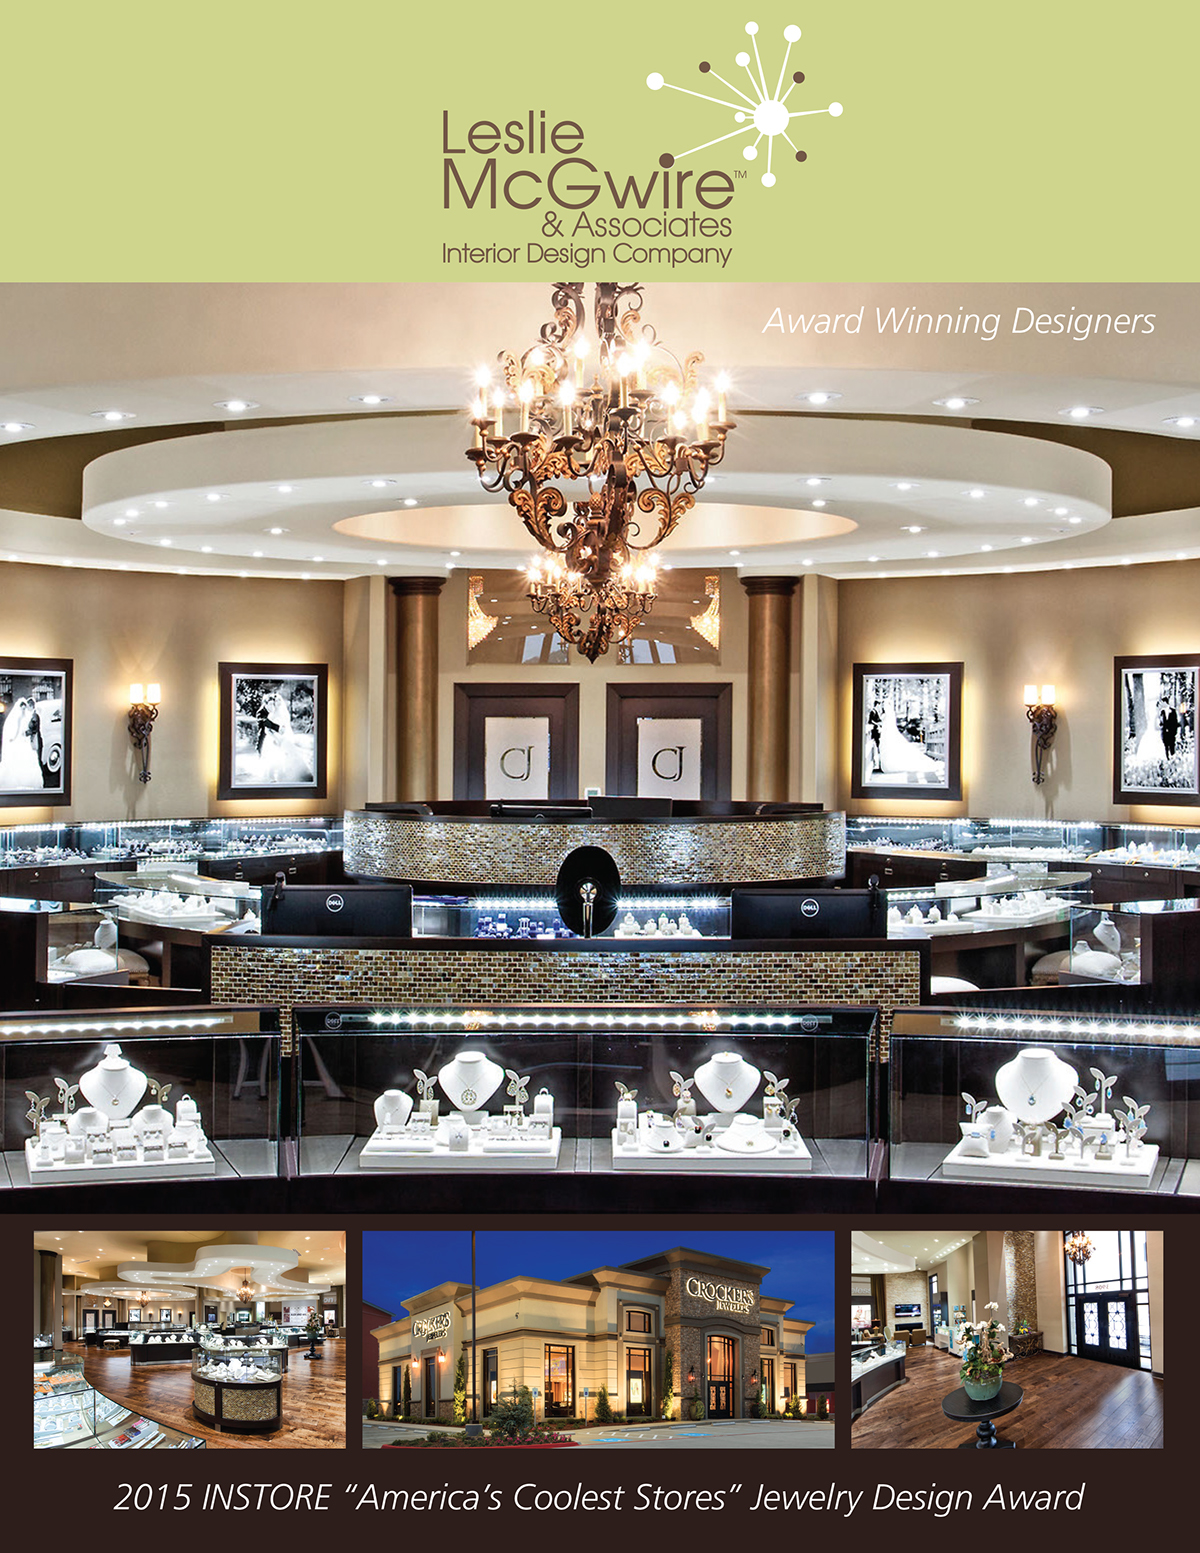 Leslie McGwire™ Has Over 30 Years In Business Development, Interior Design,  Equipment, Furniture Sales And Marketing Services For Hospitality  Environments ...